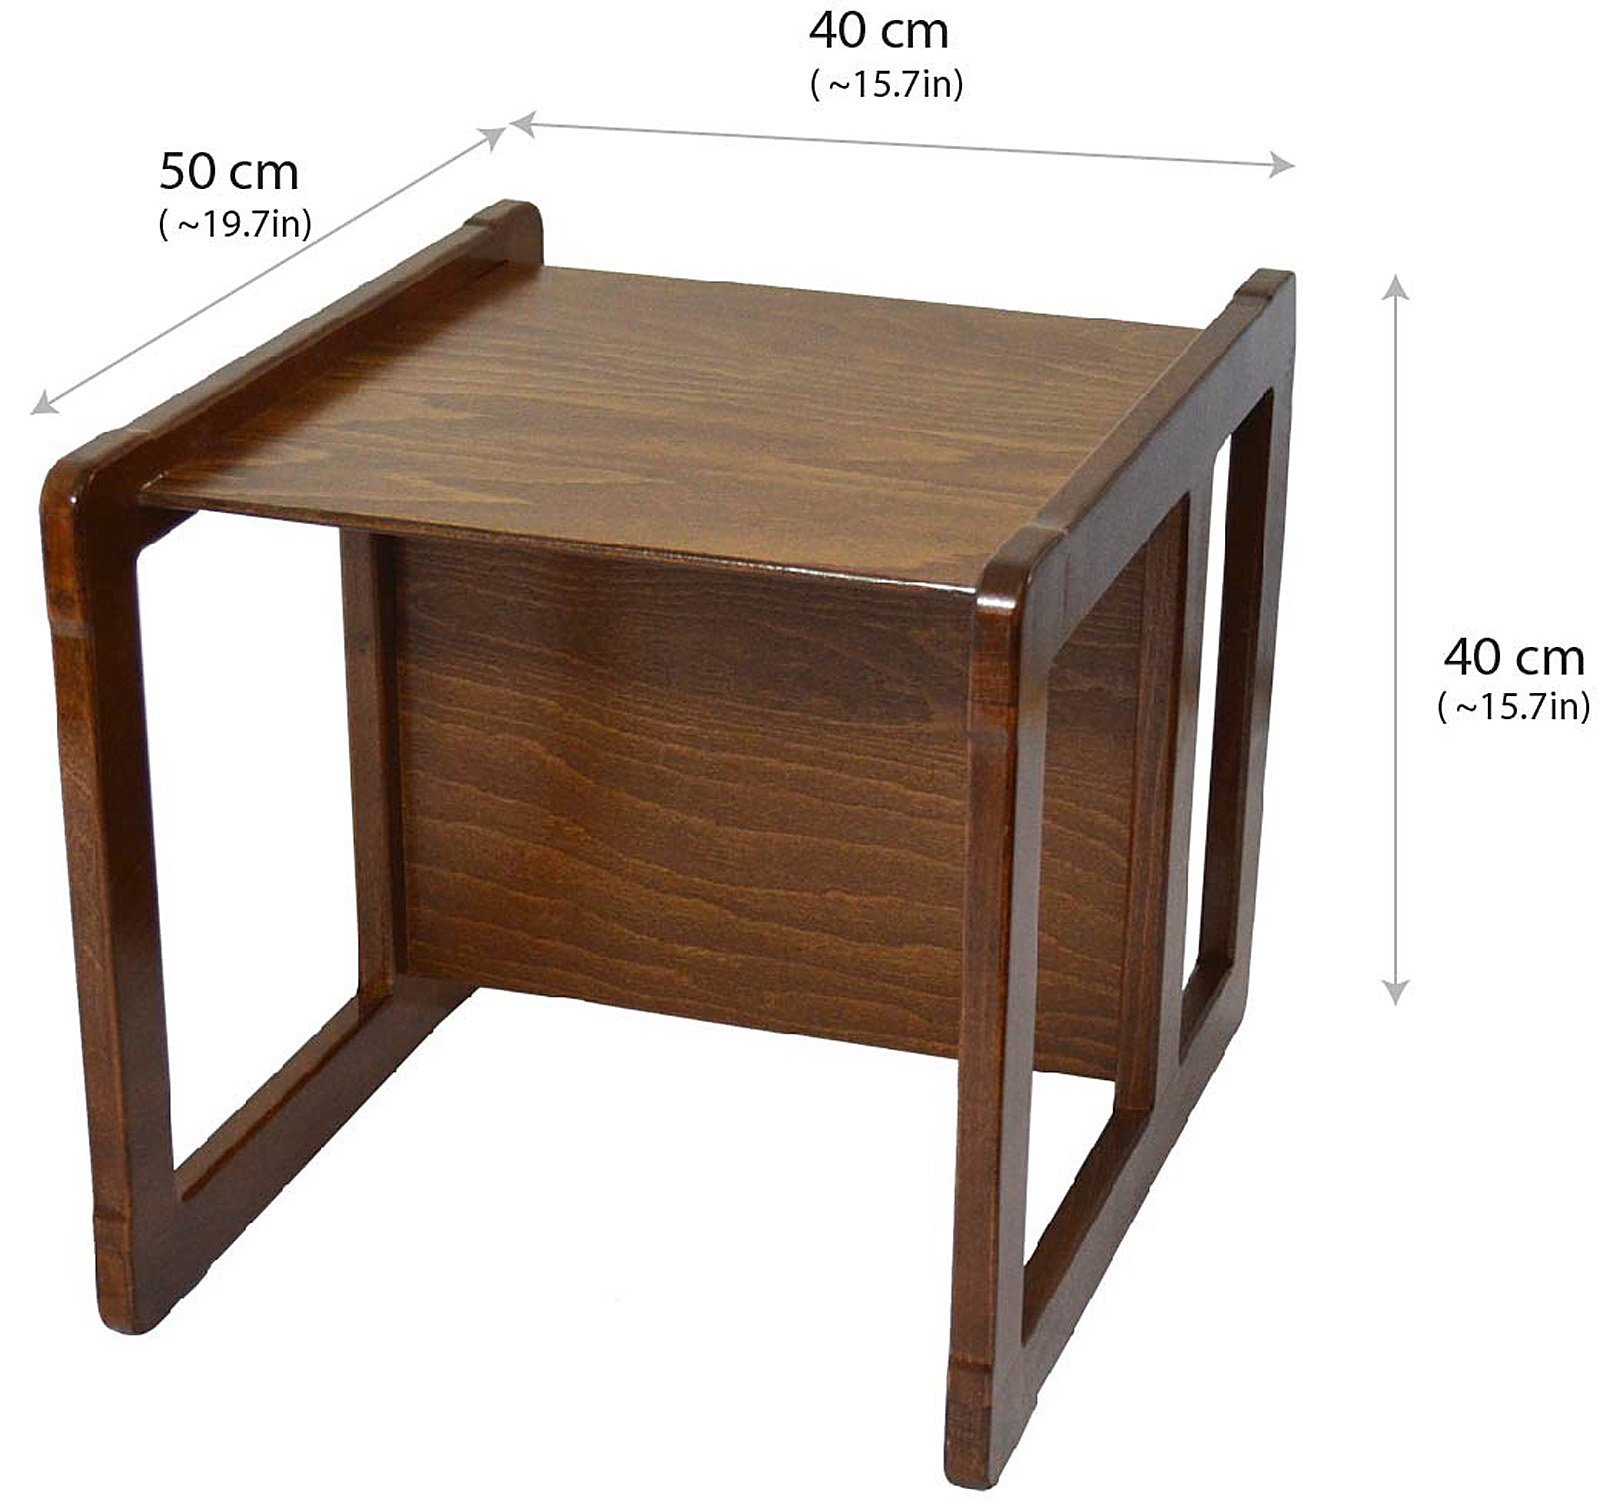 3 in 1 Childrens Multifunctional Furniture Set of 2, One Small Chair or Table and One Large Chair or Table Beech Wood, Dark Stained by Obique Ltd (Image #3)